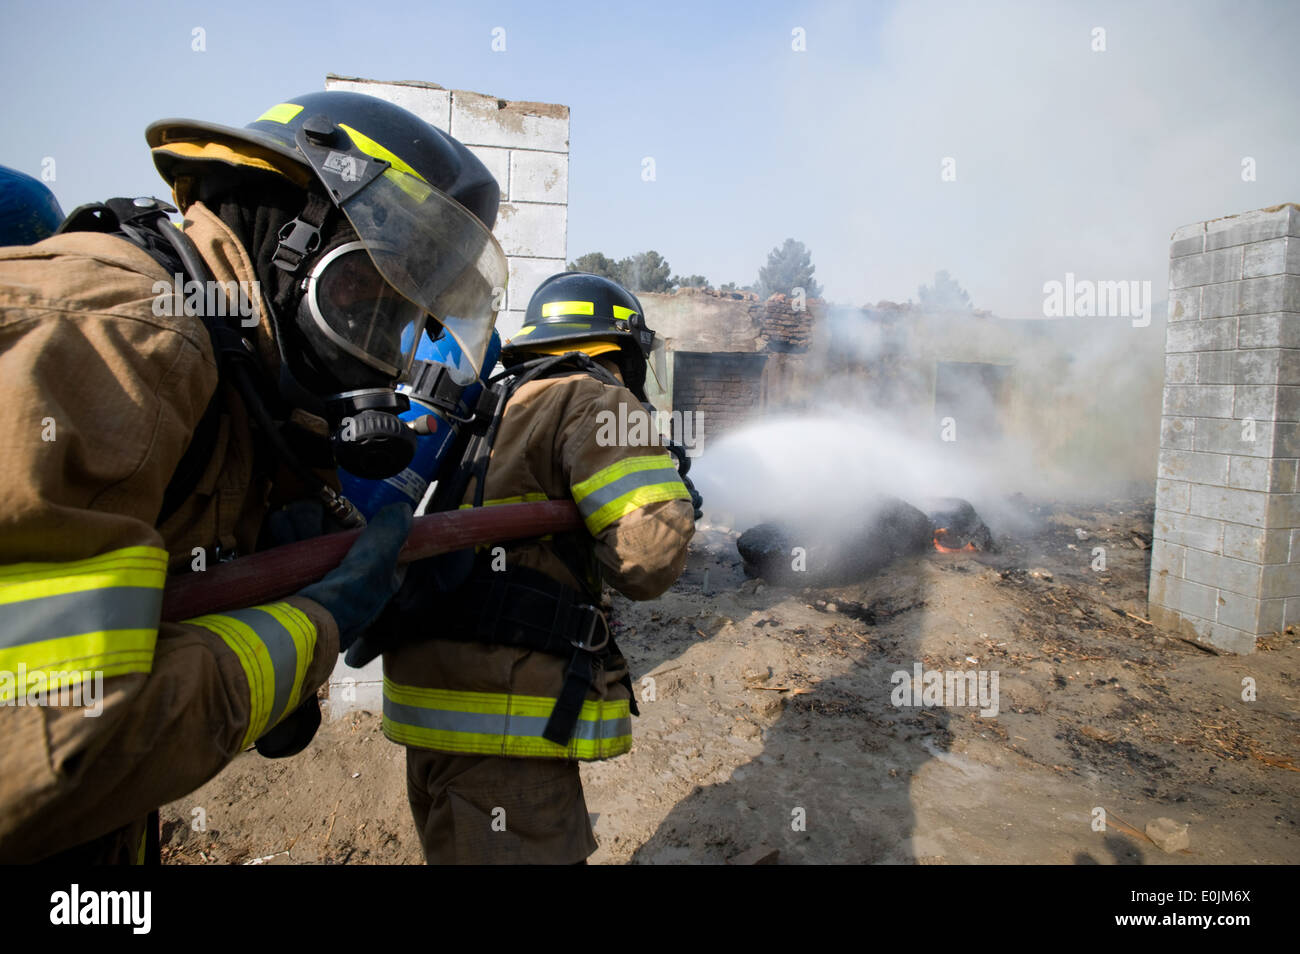 KABUL, Afghanistan --Members of the Afghan National Air Corps fire protection unit respond a fire intentionally Stock Photo